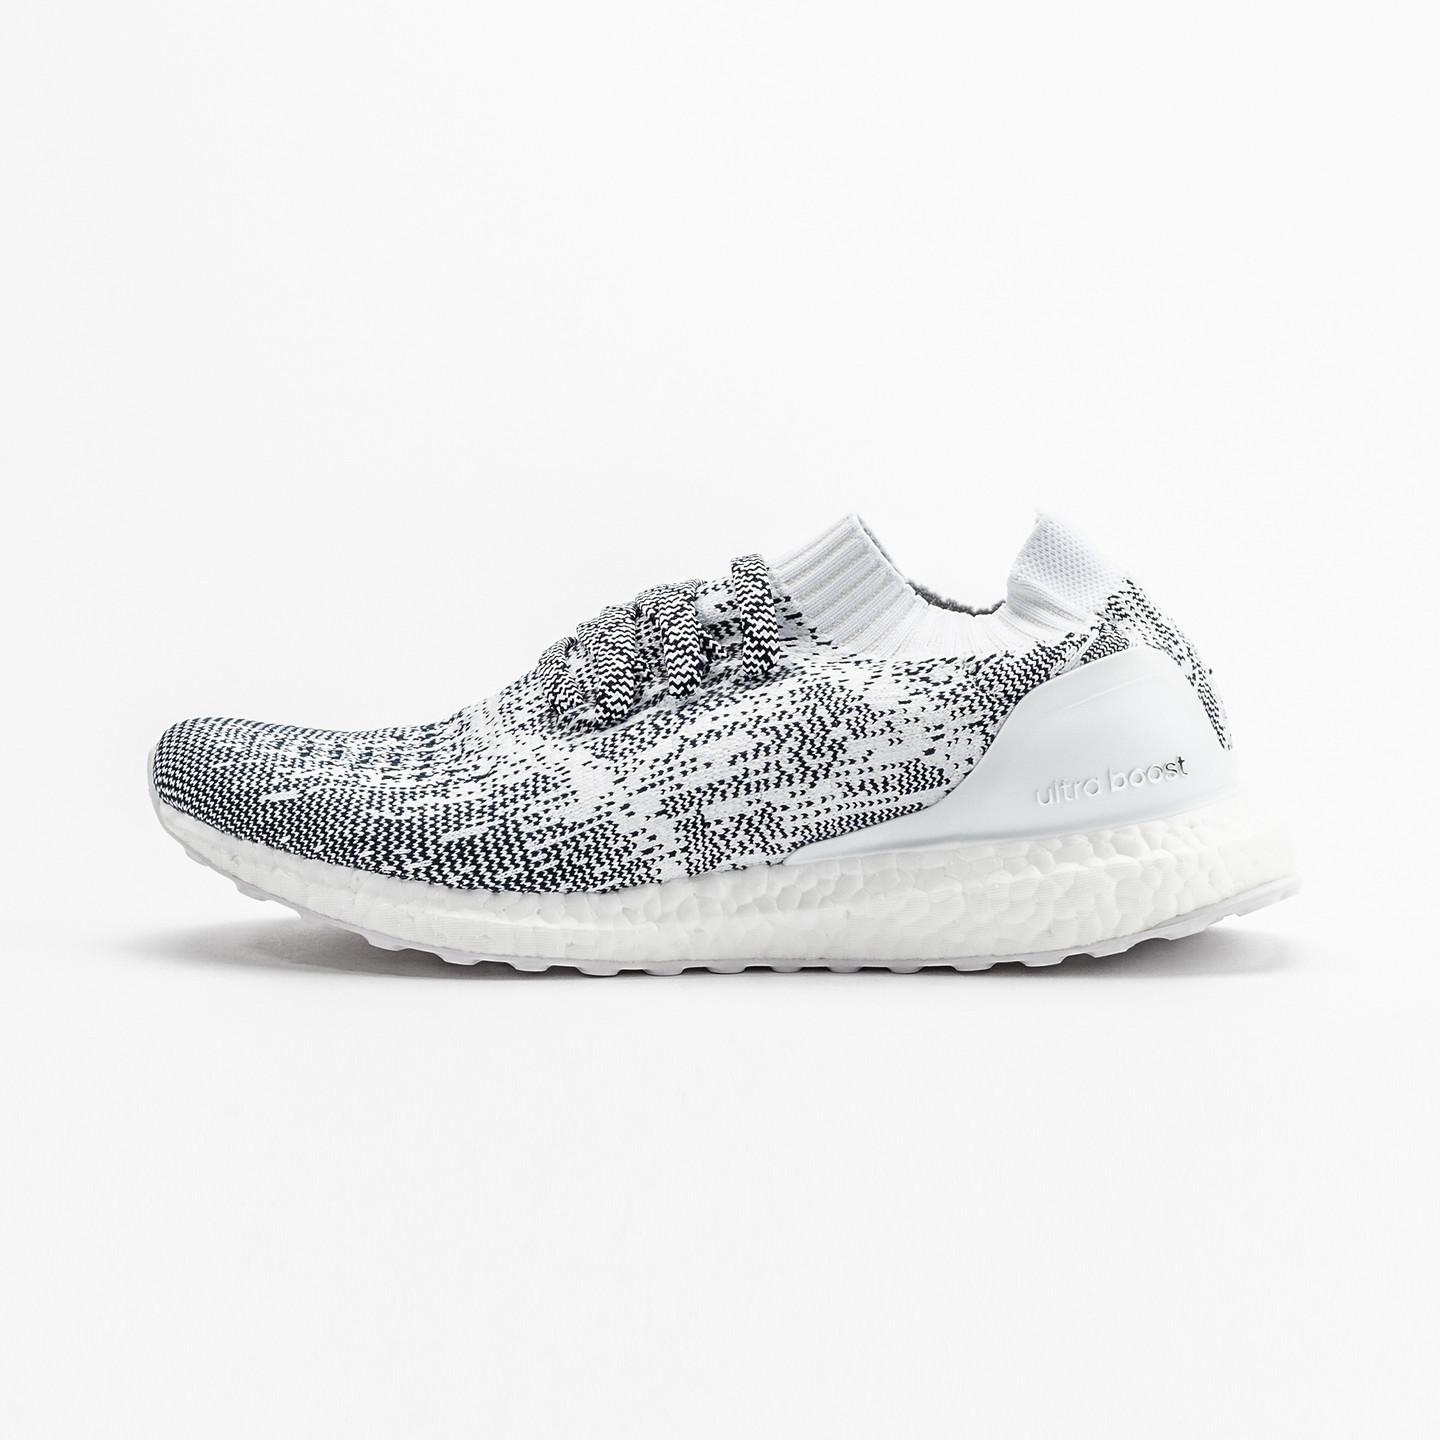 Adidas Ultra Boost Uncaged 'Oreo' White / Black BA9616-47.33